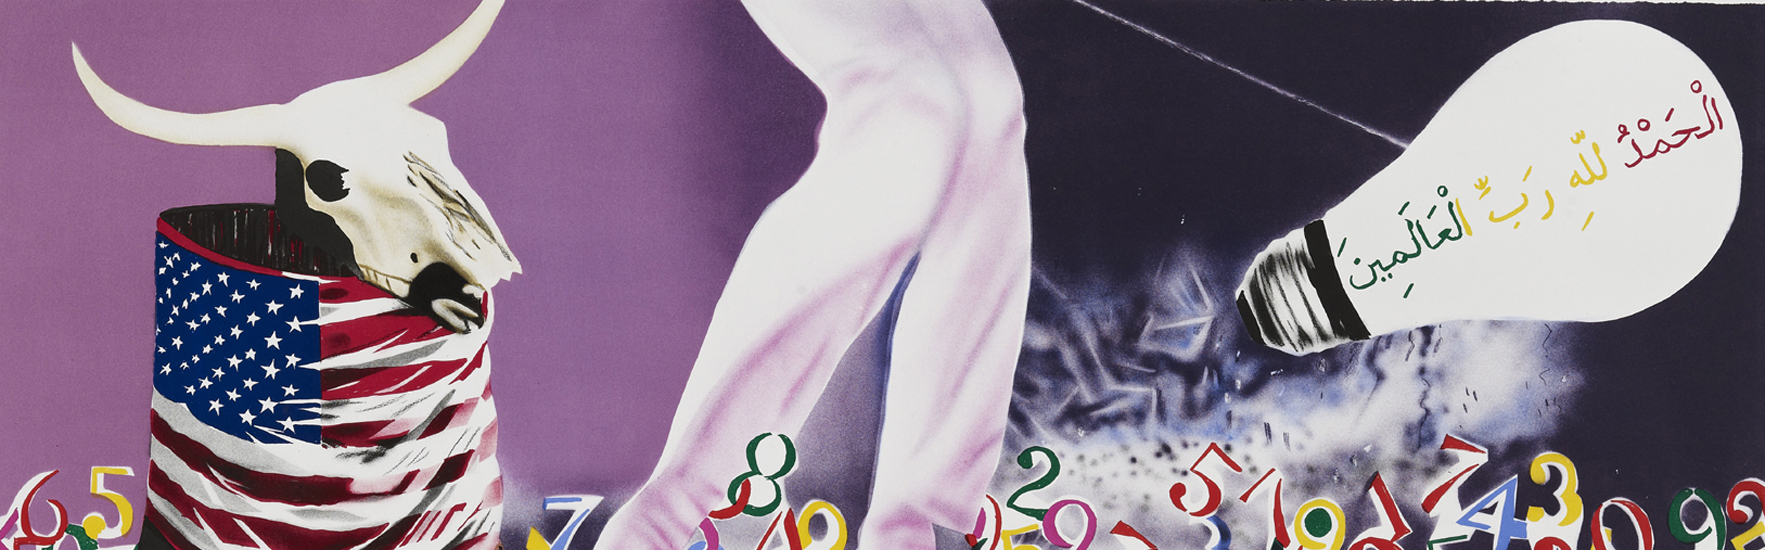 James Rosenquist, <em>The Xenophobic Movie Director or Our Foreign Policy</em>, 2011 15-color lithograph 63.5 x 147.3 cm (25 x 58 in), Edition of 42. Image: Courtesy of Gemini G.E.L.